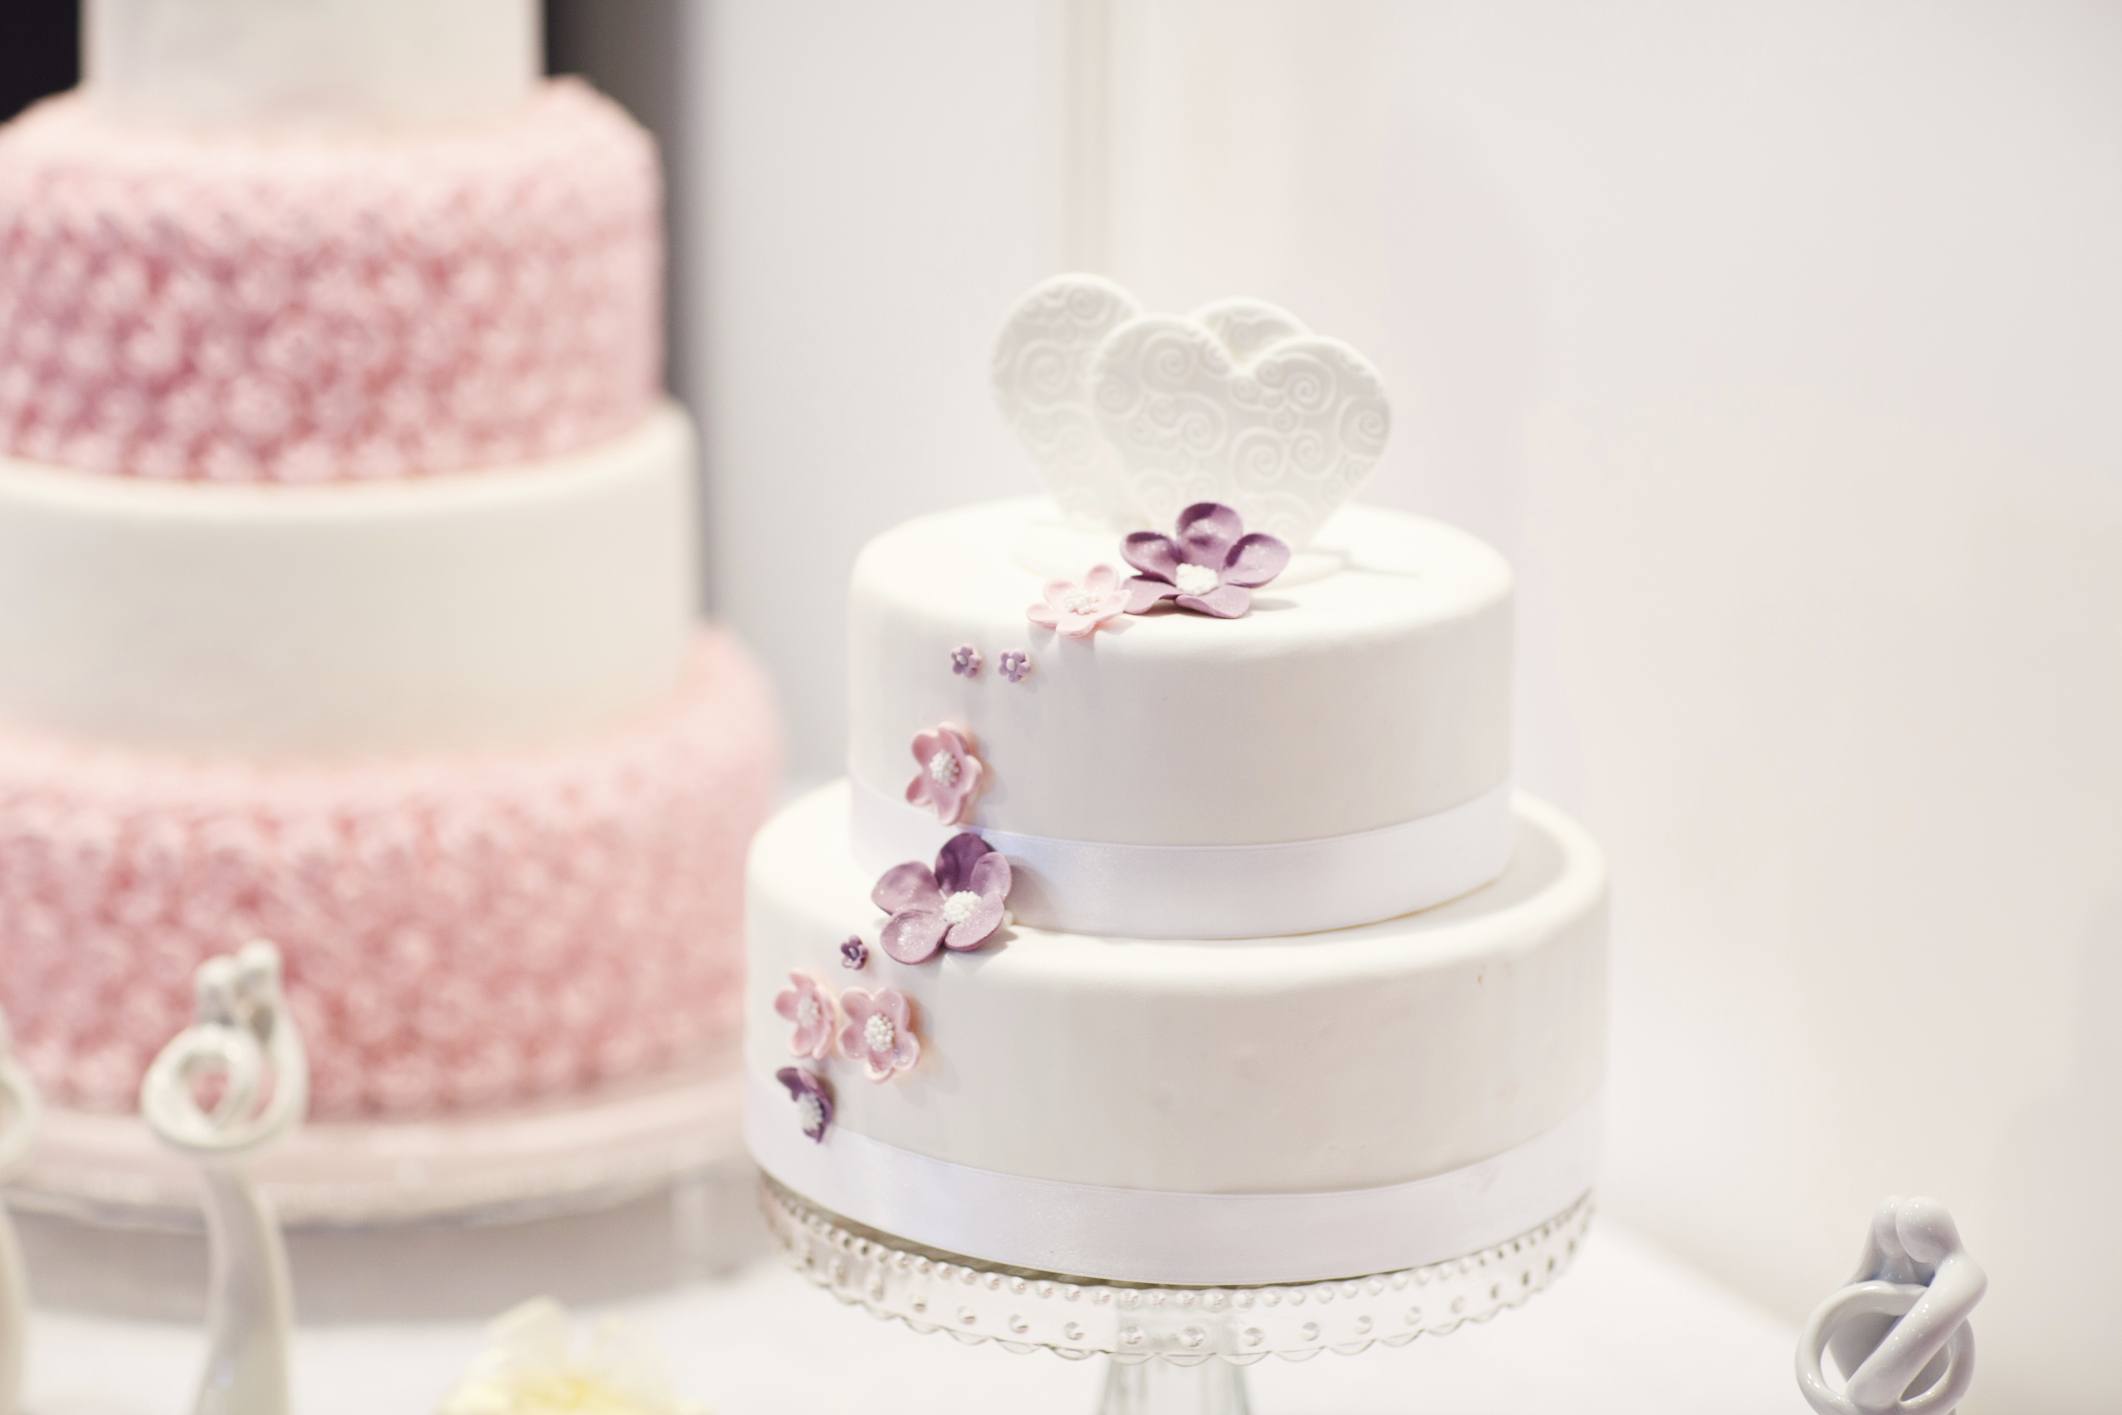 Simple budget wedding cake ideas   Easy Weddings UK Simple budget wedding cake ideas